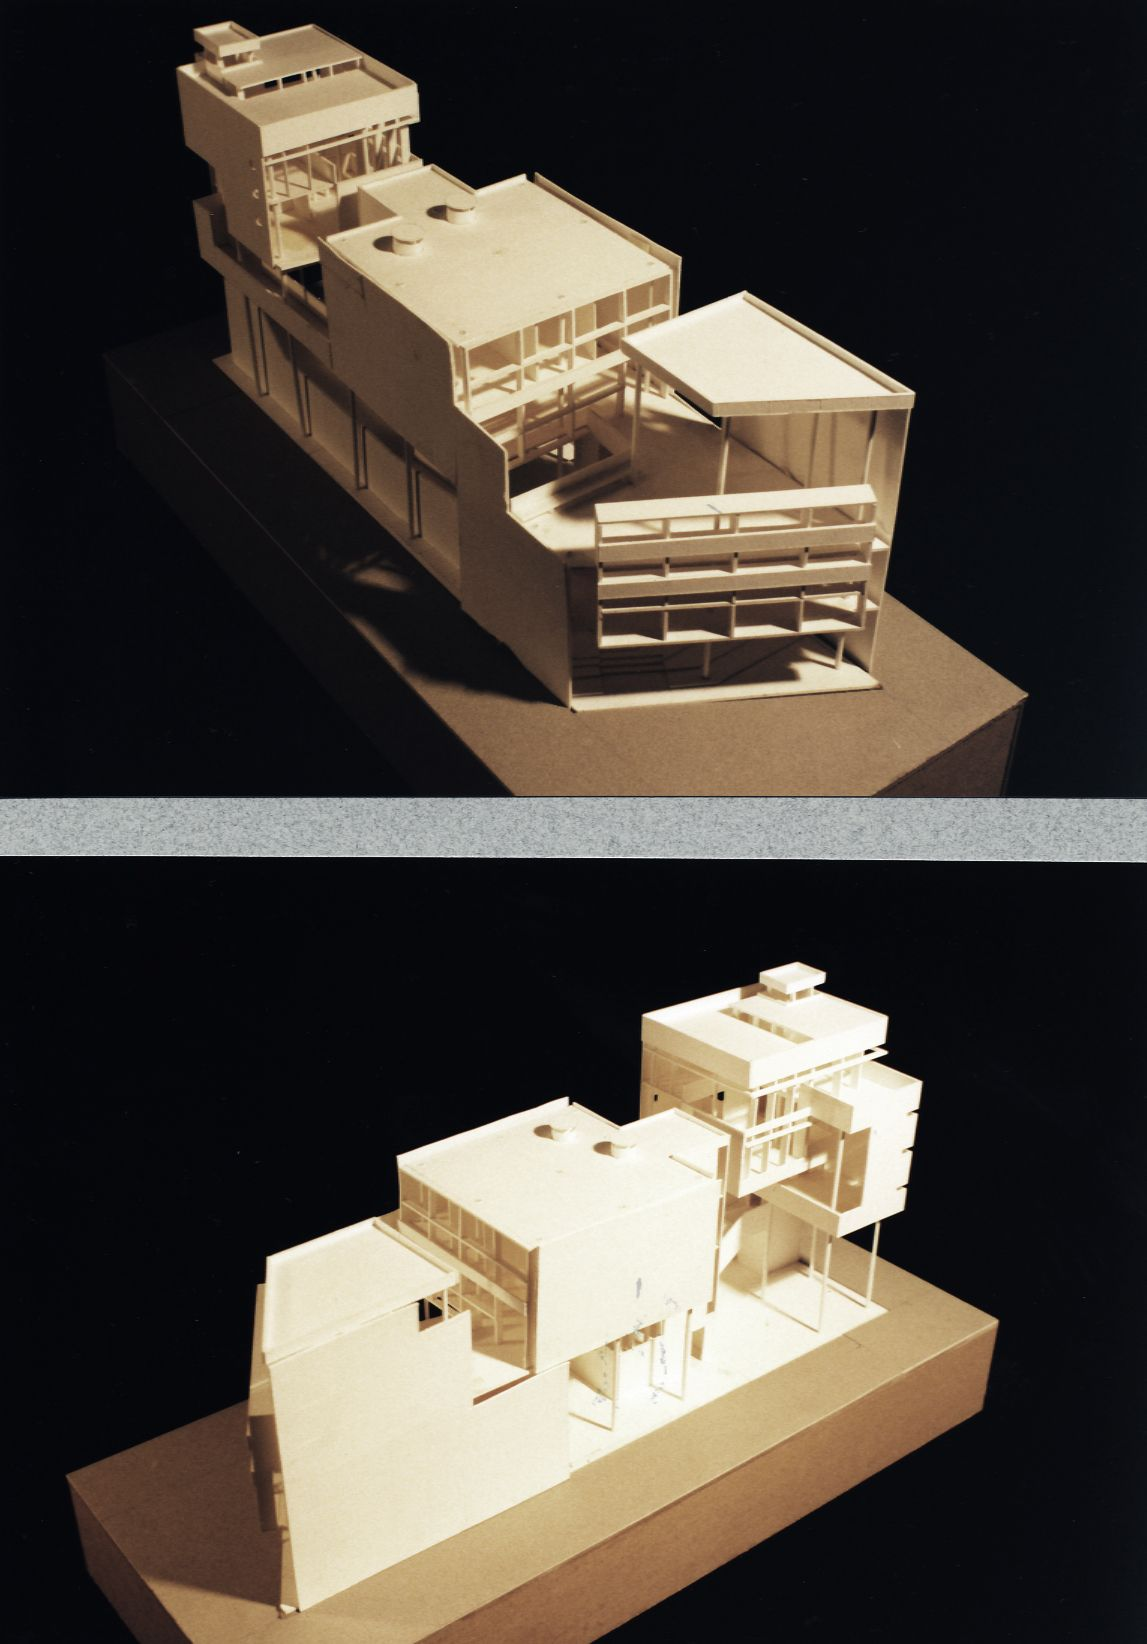 Casa Curutchet By Le Corbusier Model Study Home Design Ideas